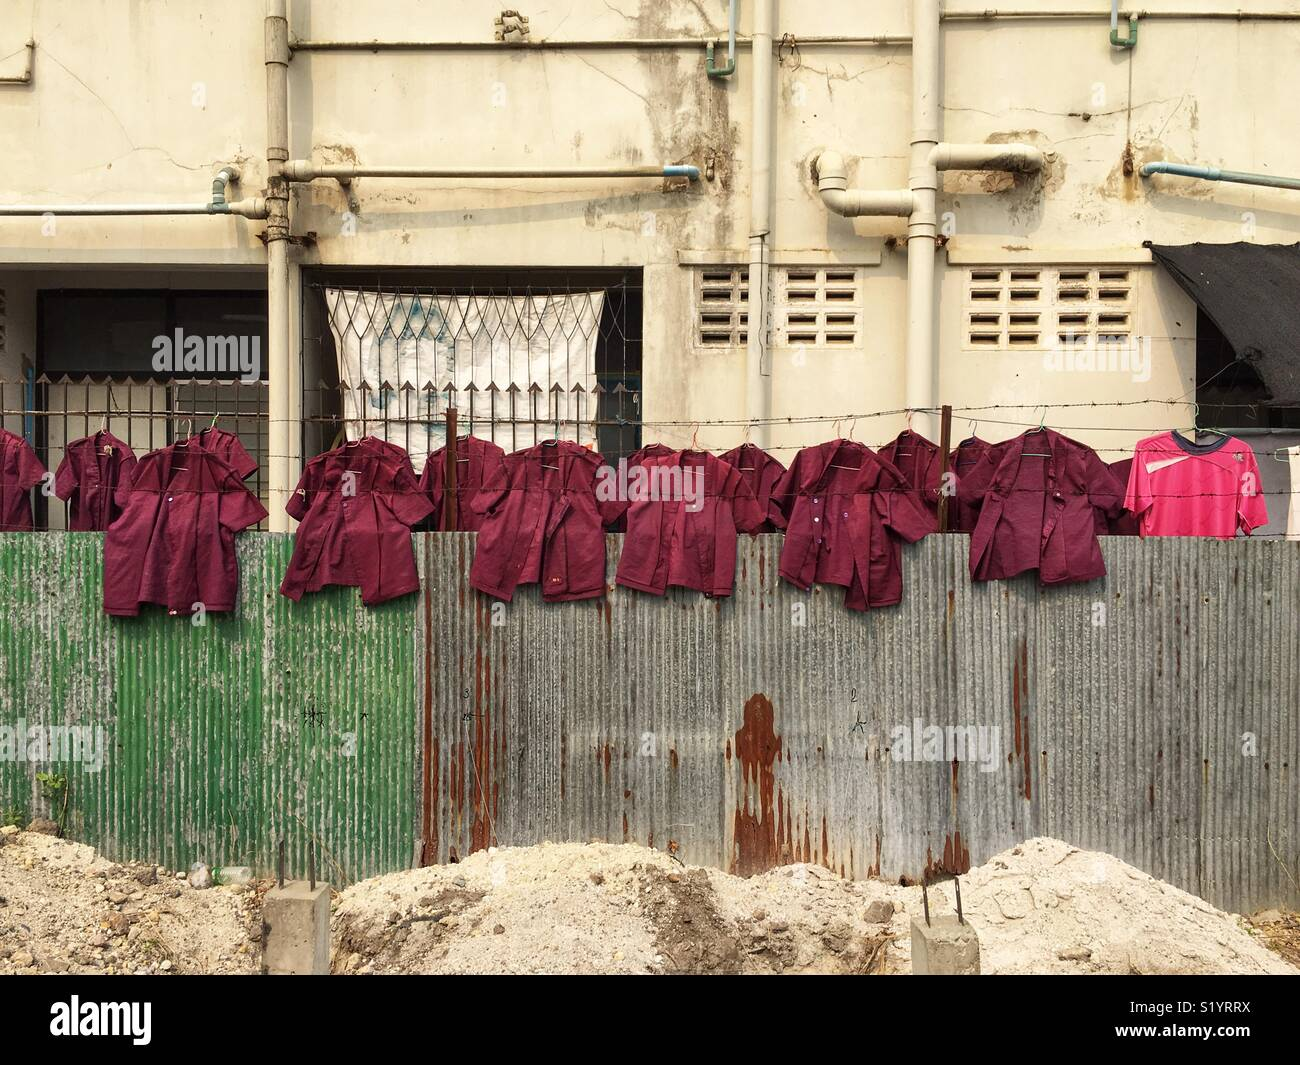 Workers uniforms - Stock Image